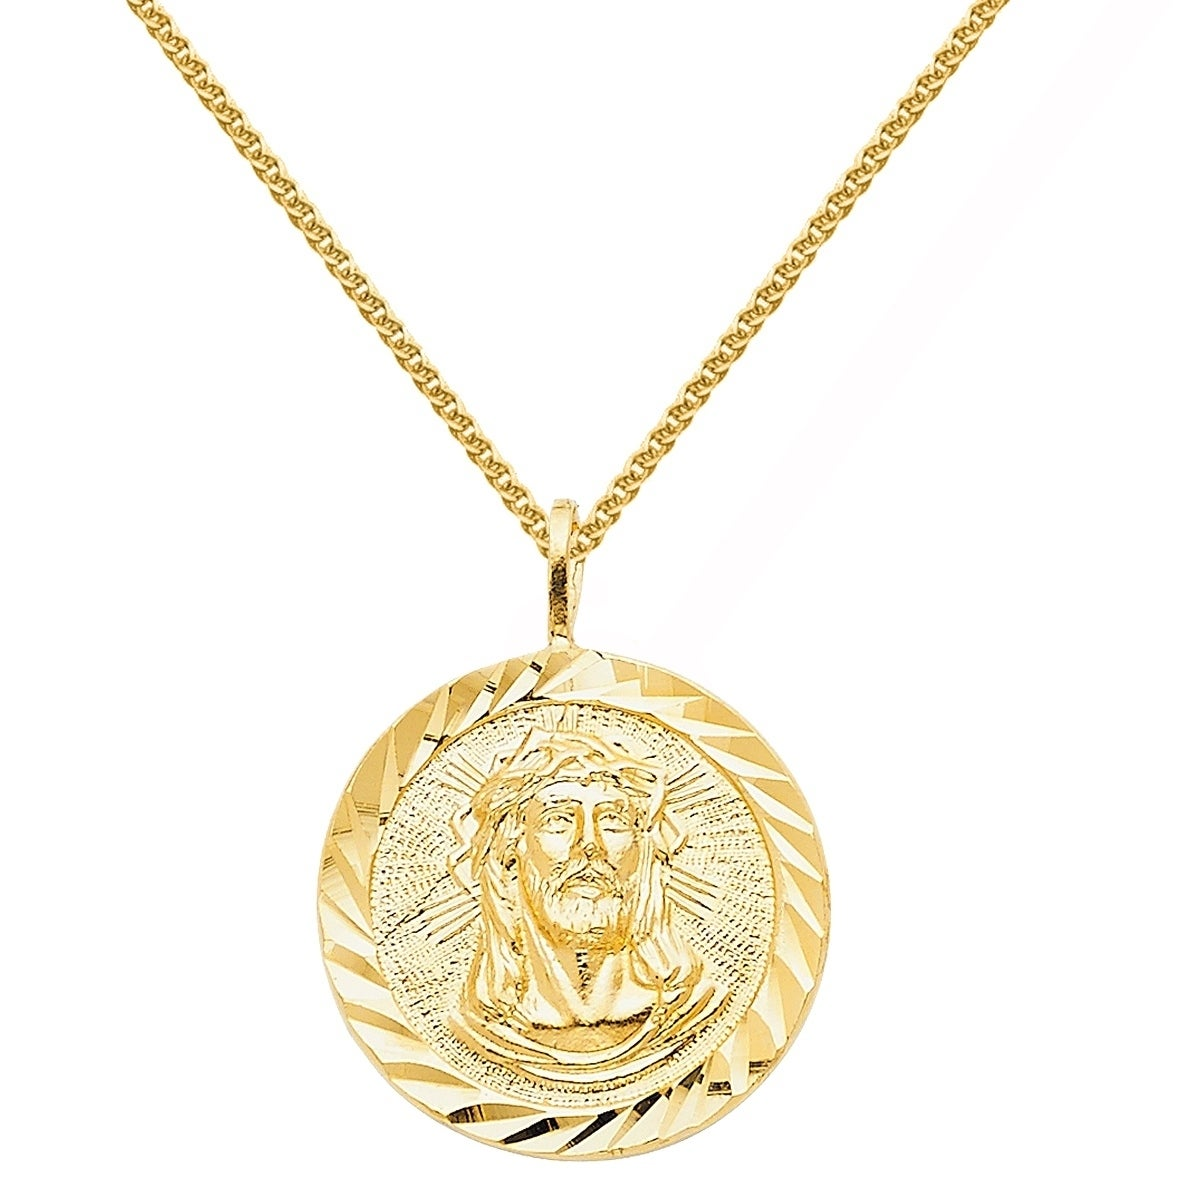 baroque gold paris products medallion s chanel chain necklace pendant collection